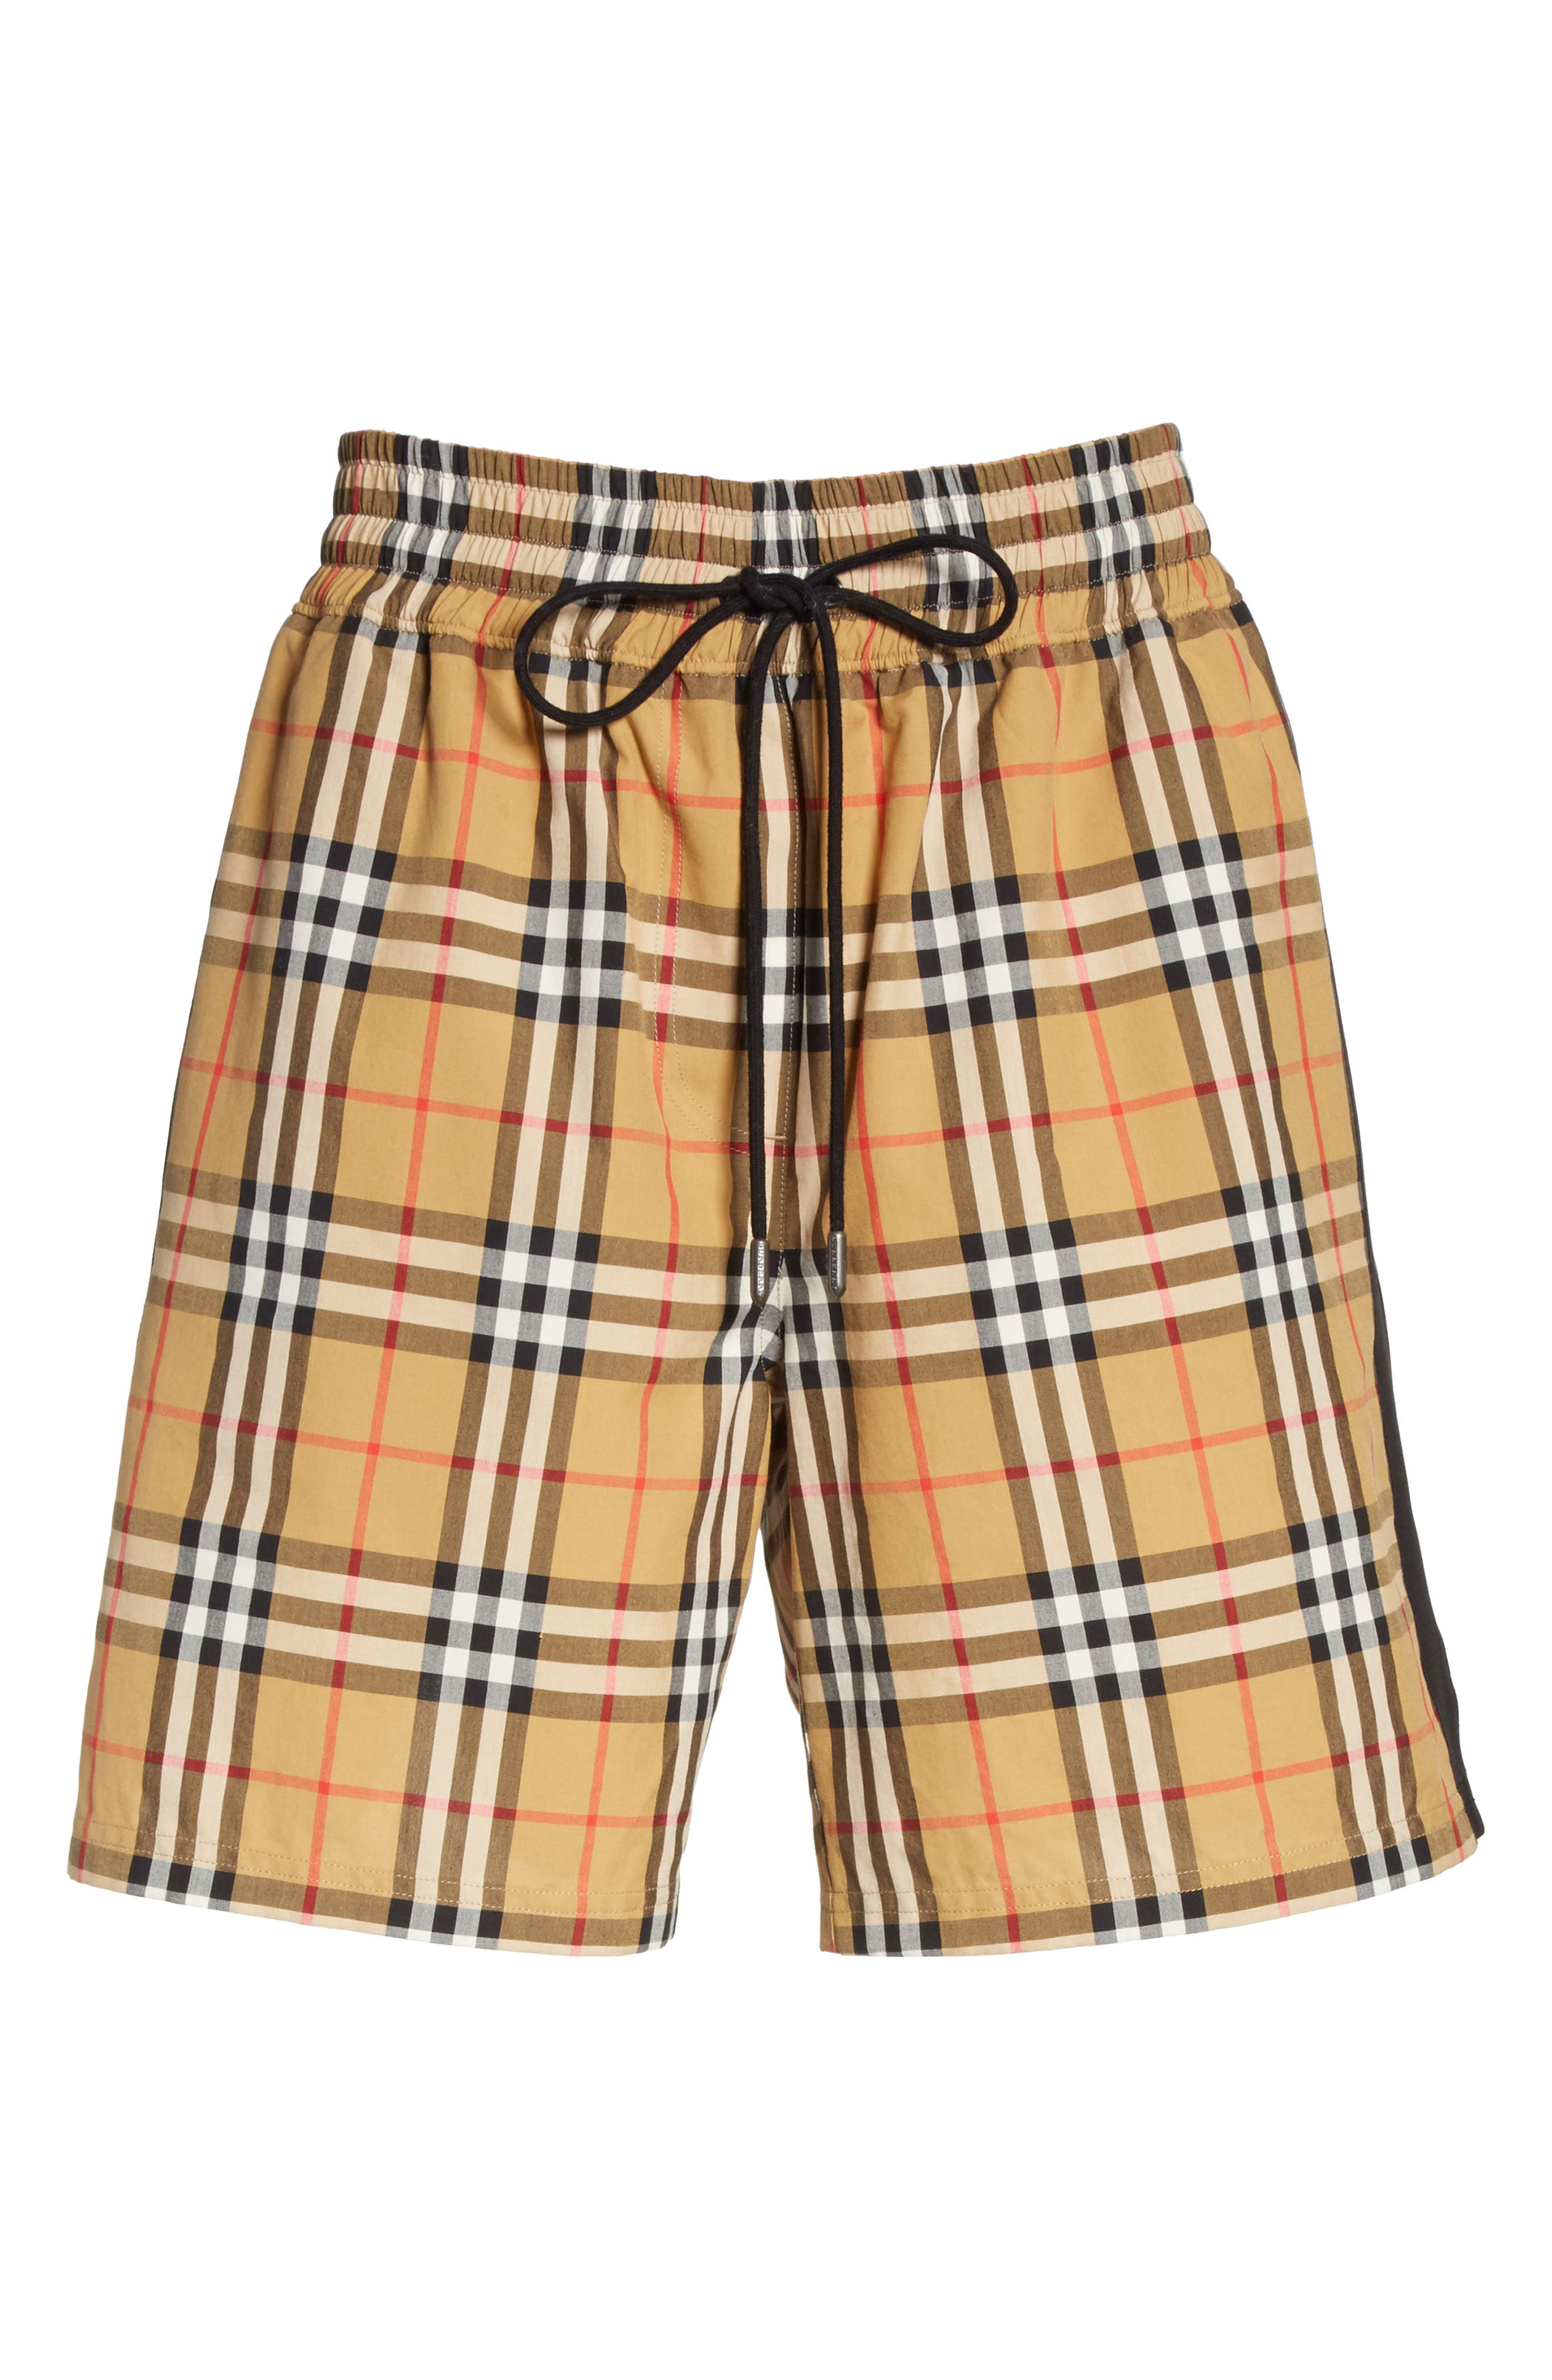 Dovemoore Cotton Shorts,                             Alternate thumbnail 7, color,                             ANTIQUE YELLOW